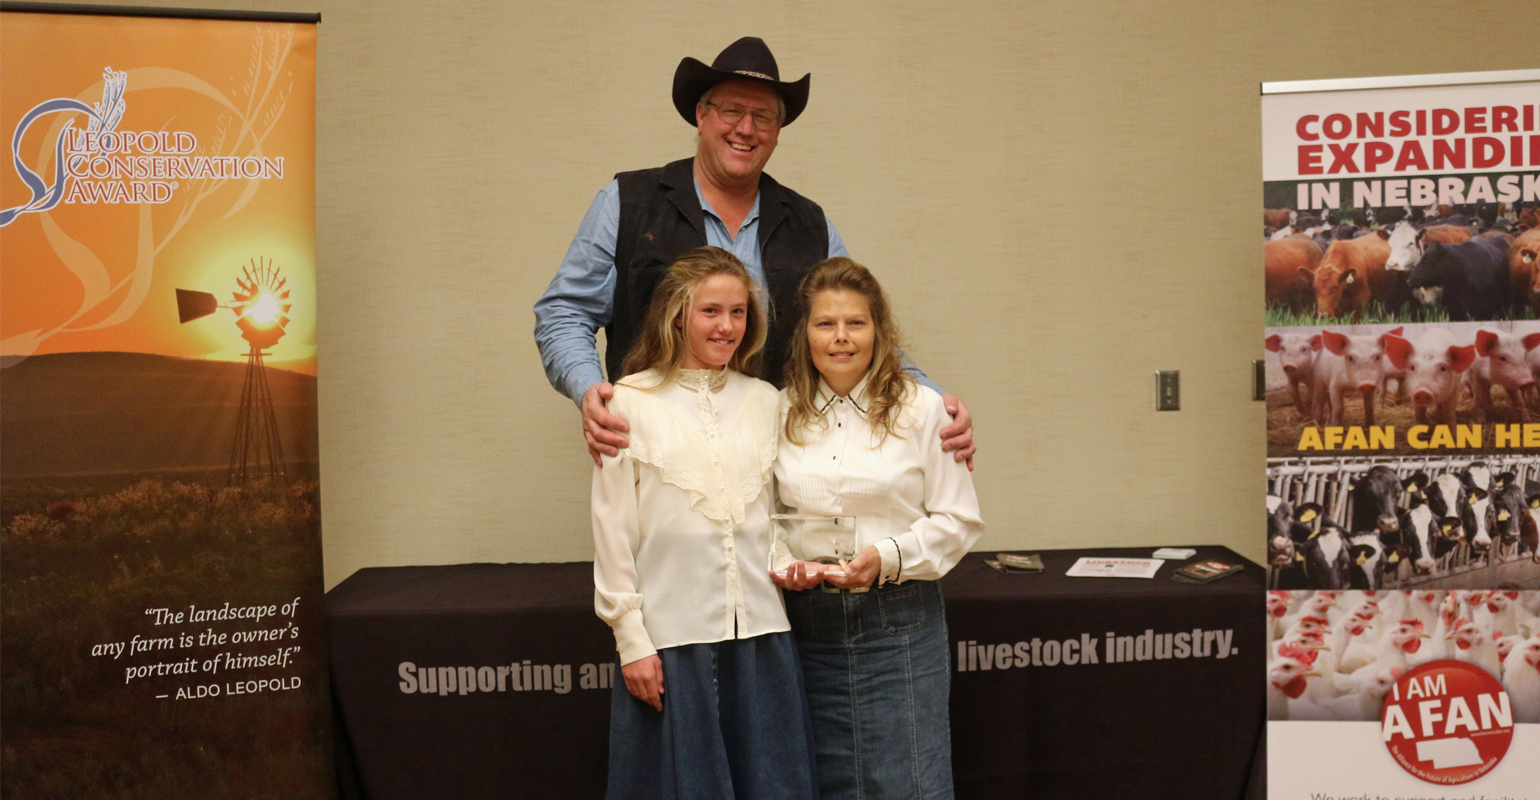 Russ, Angela and Cheyenne Sundstrom from Broken Box Ranch in Moorefield, Nebraska with their Leopold Conservation Award